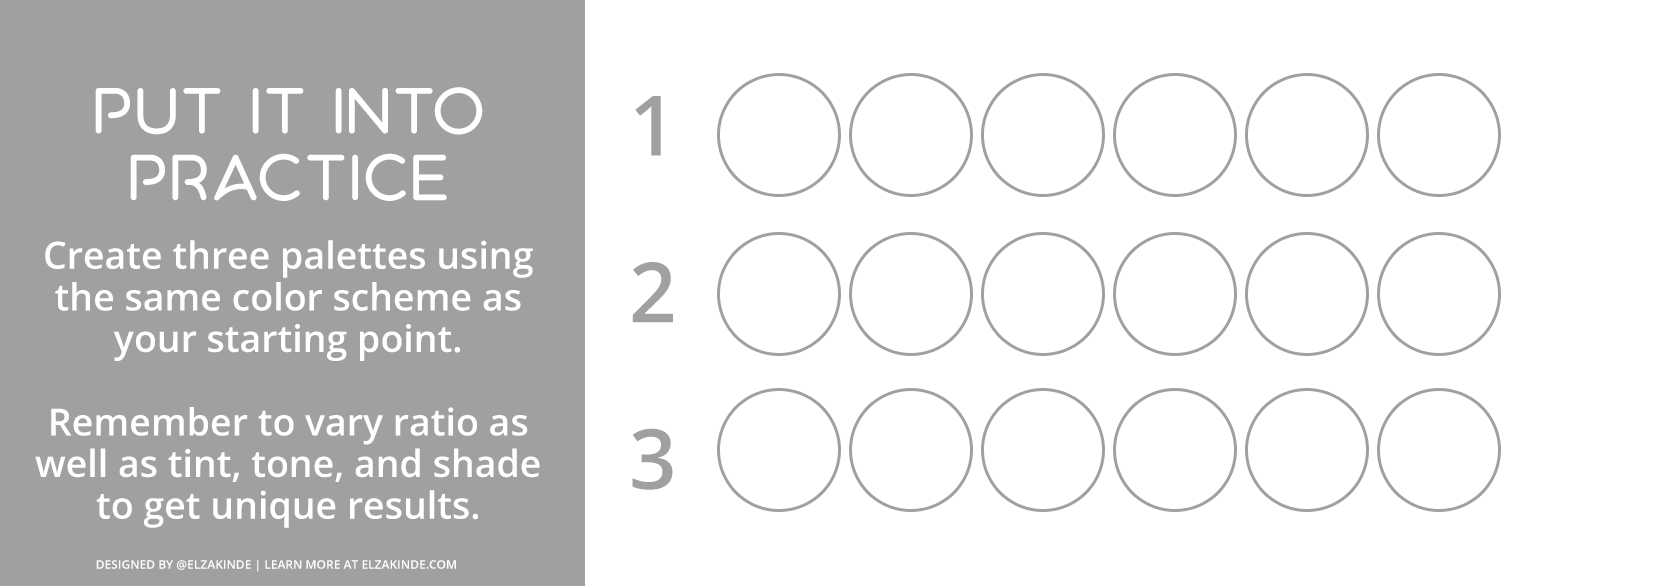 """Graphic features a gray box with text reading """"Put it Into Practice: Create three palettes using the same color scheme as your starting point. Remember to vary the ratio as well as tint, tone, and shade to get unique results."""" To the right, three sets of 6 blank circles allow you to create your own palettes."""